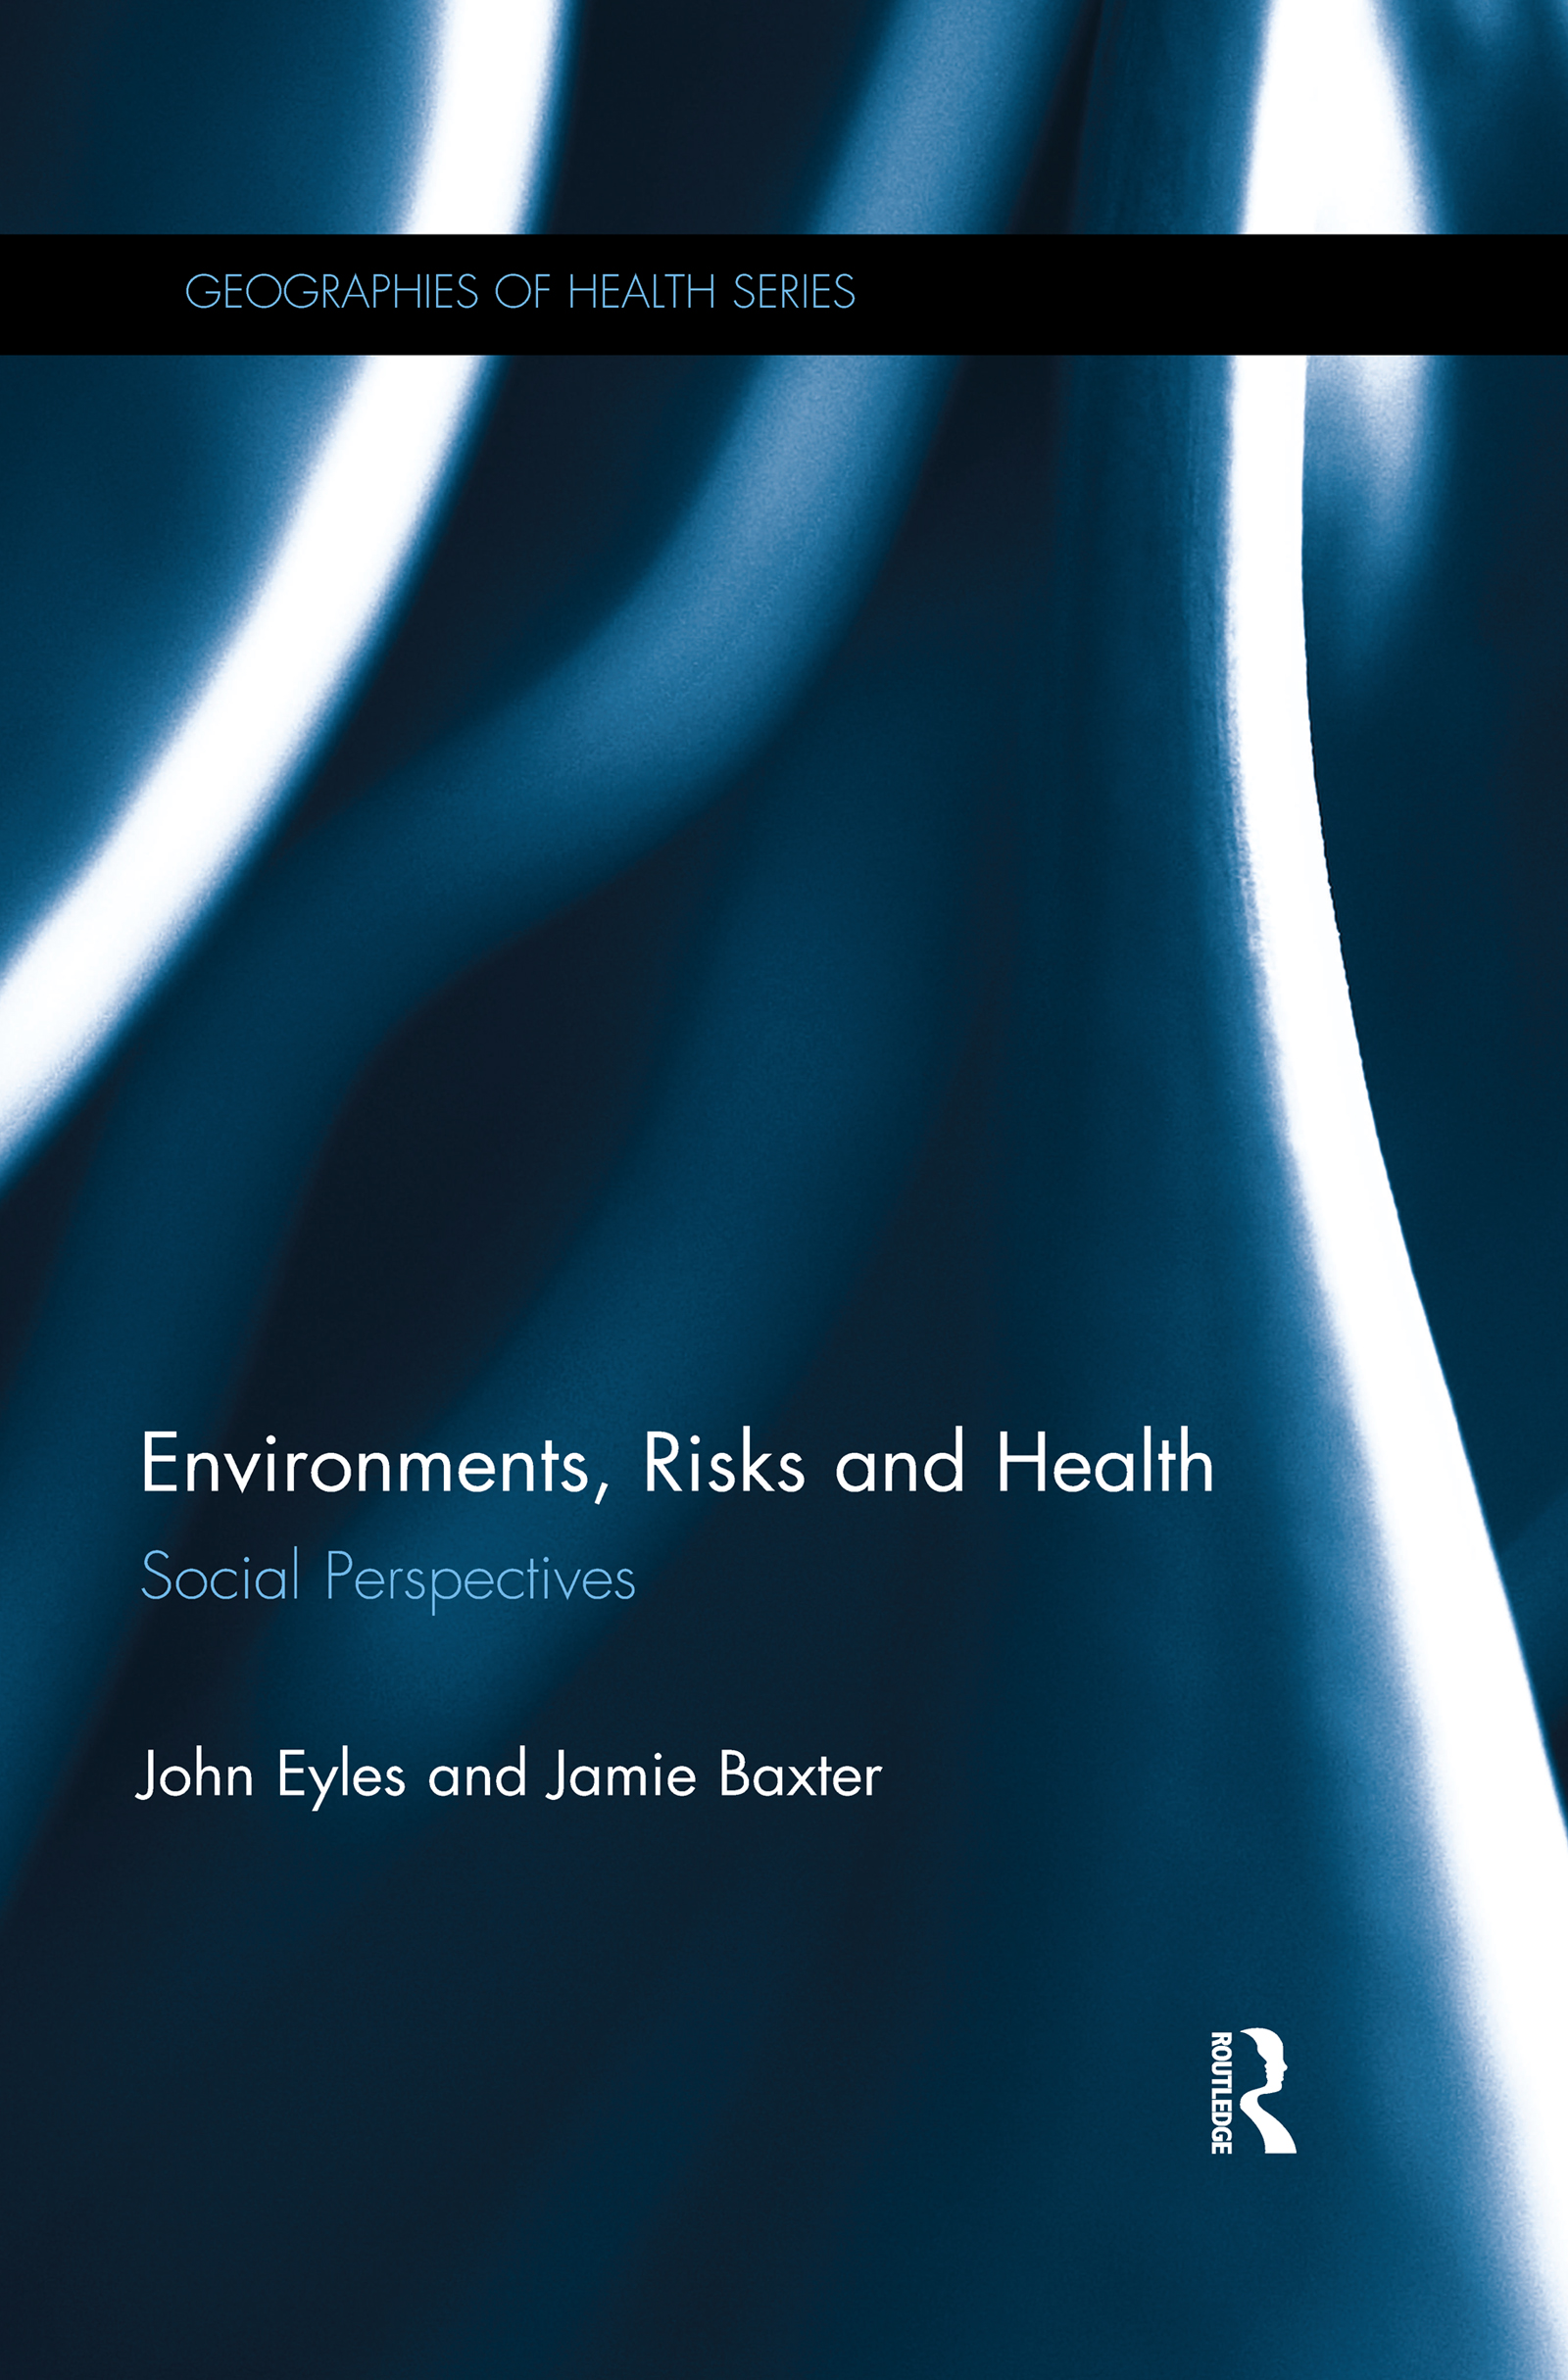 Environments, Risks and Health